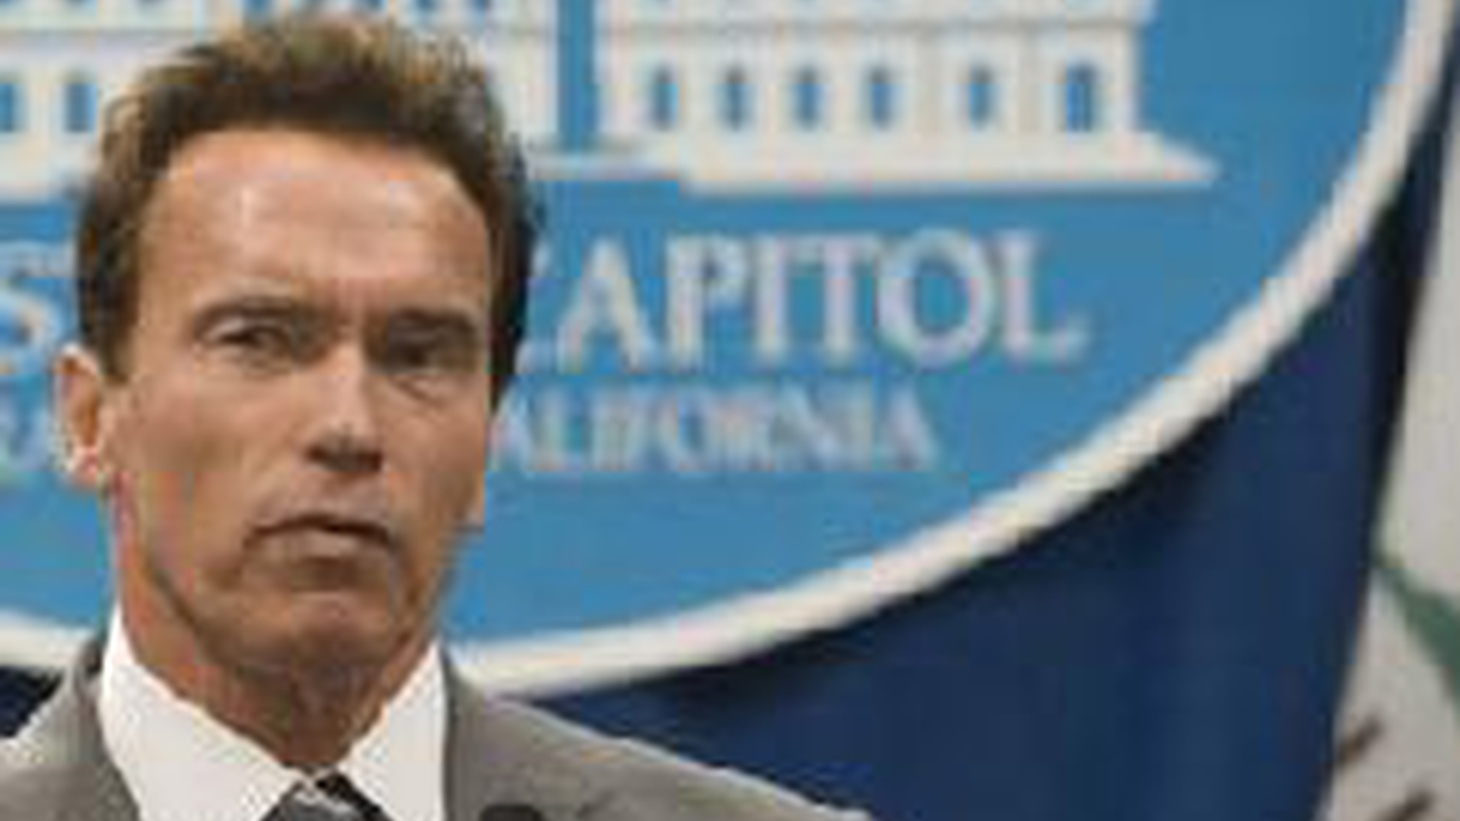 Legislators of both parties have agreed on a state budget without including Governor Schwarzenegger in their negotiations. He says he'll veto it, but they're claiming the votes to override. On Reporter's Notebook, former and current LA Times reporters are taking Sam Zell to court.